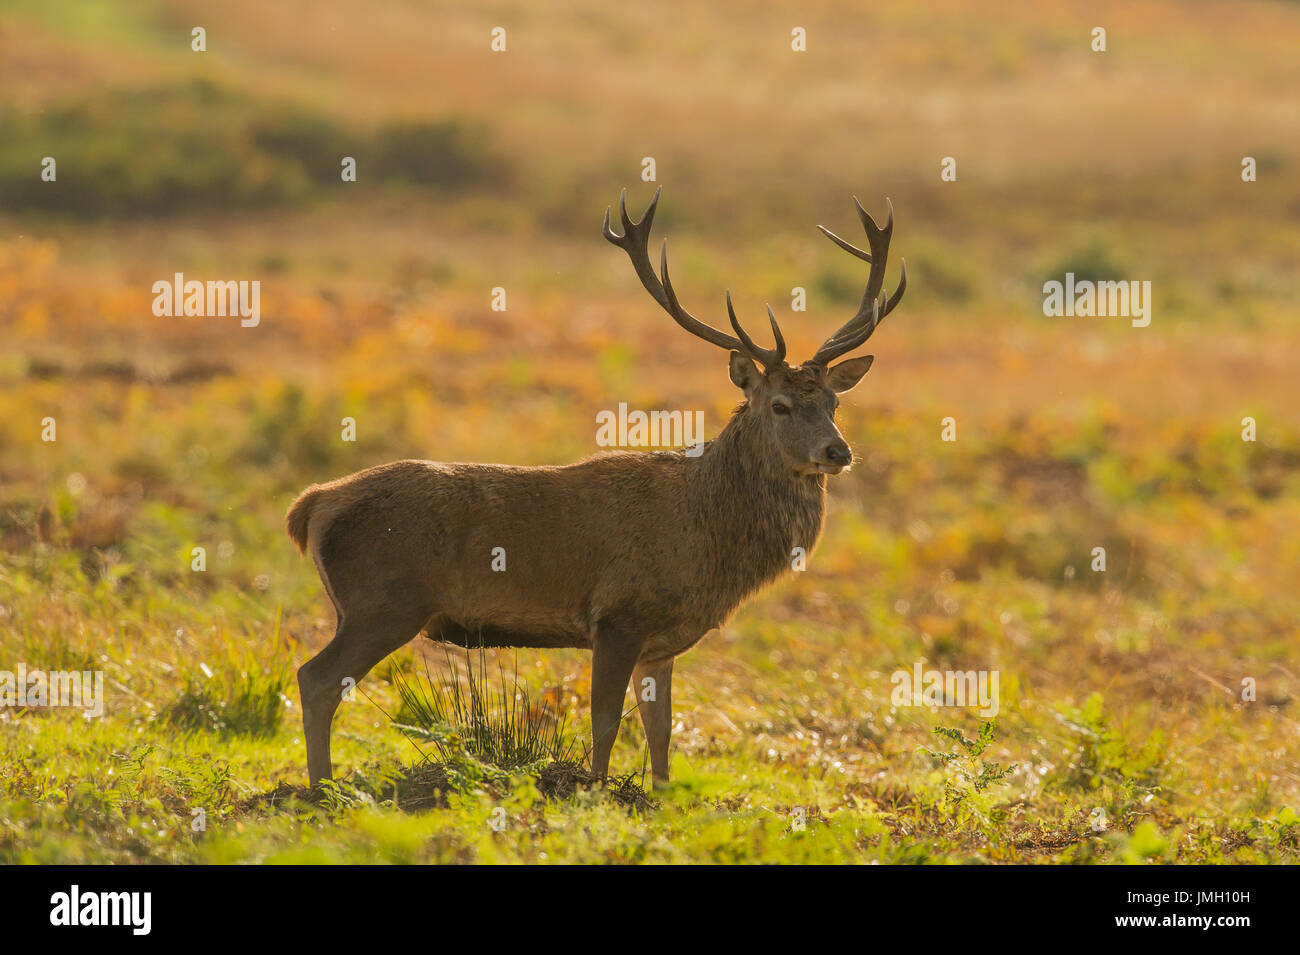 A Red deer stag during the rutting season Stock Photo